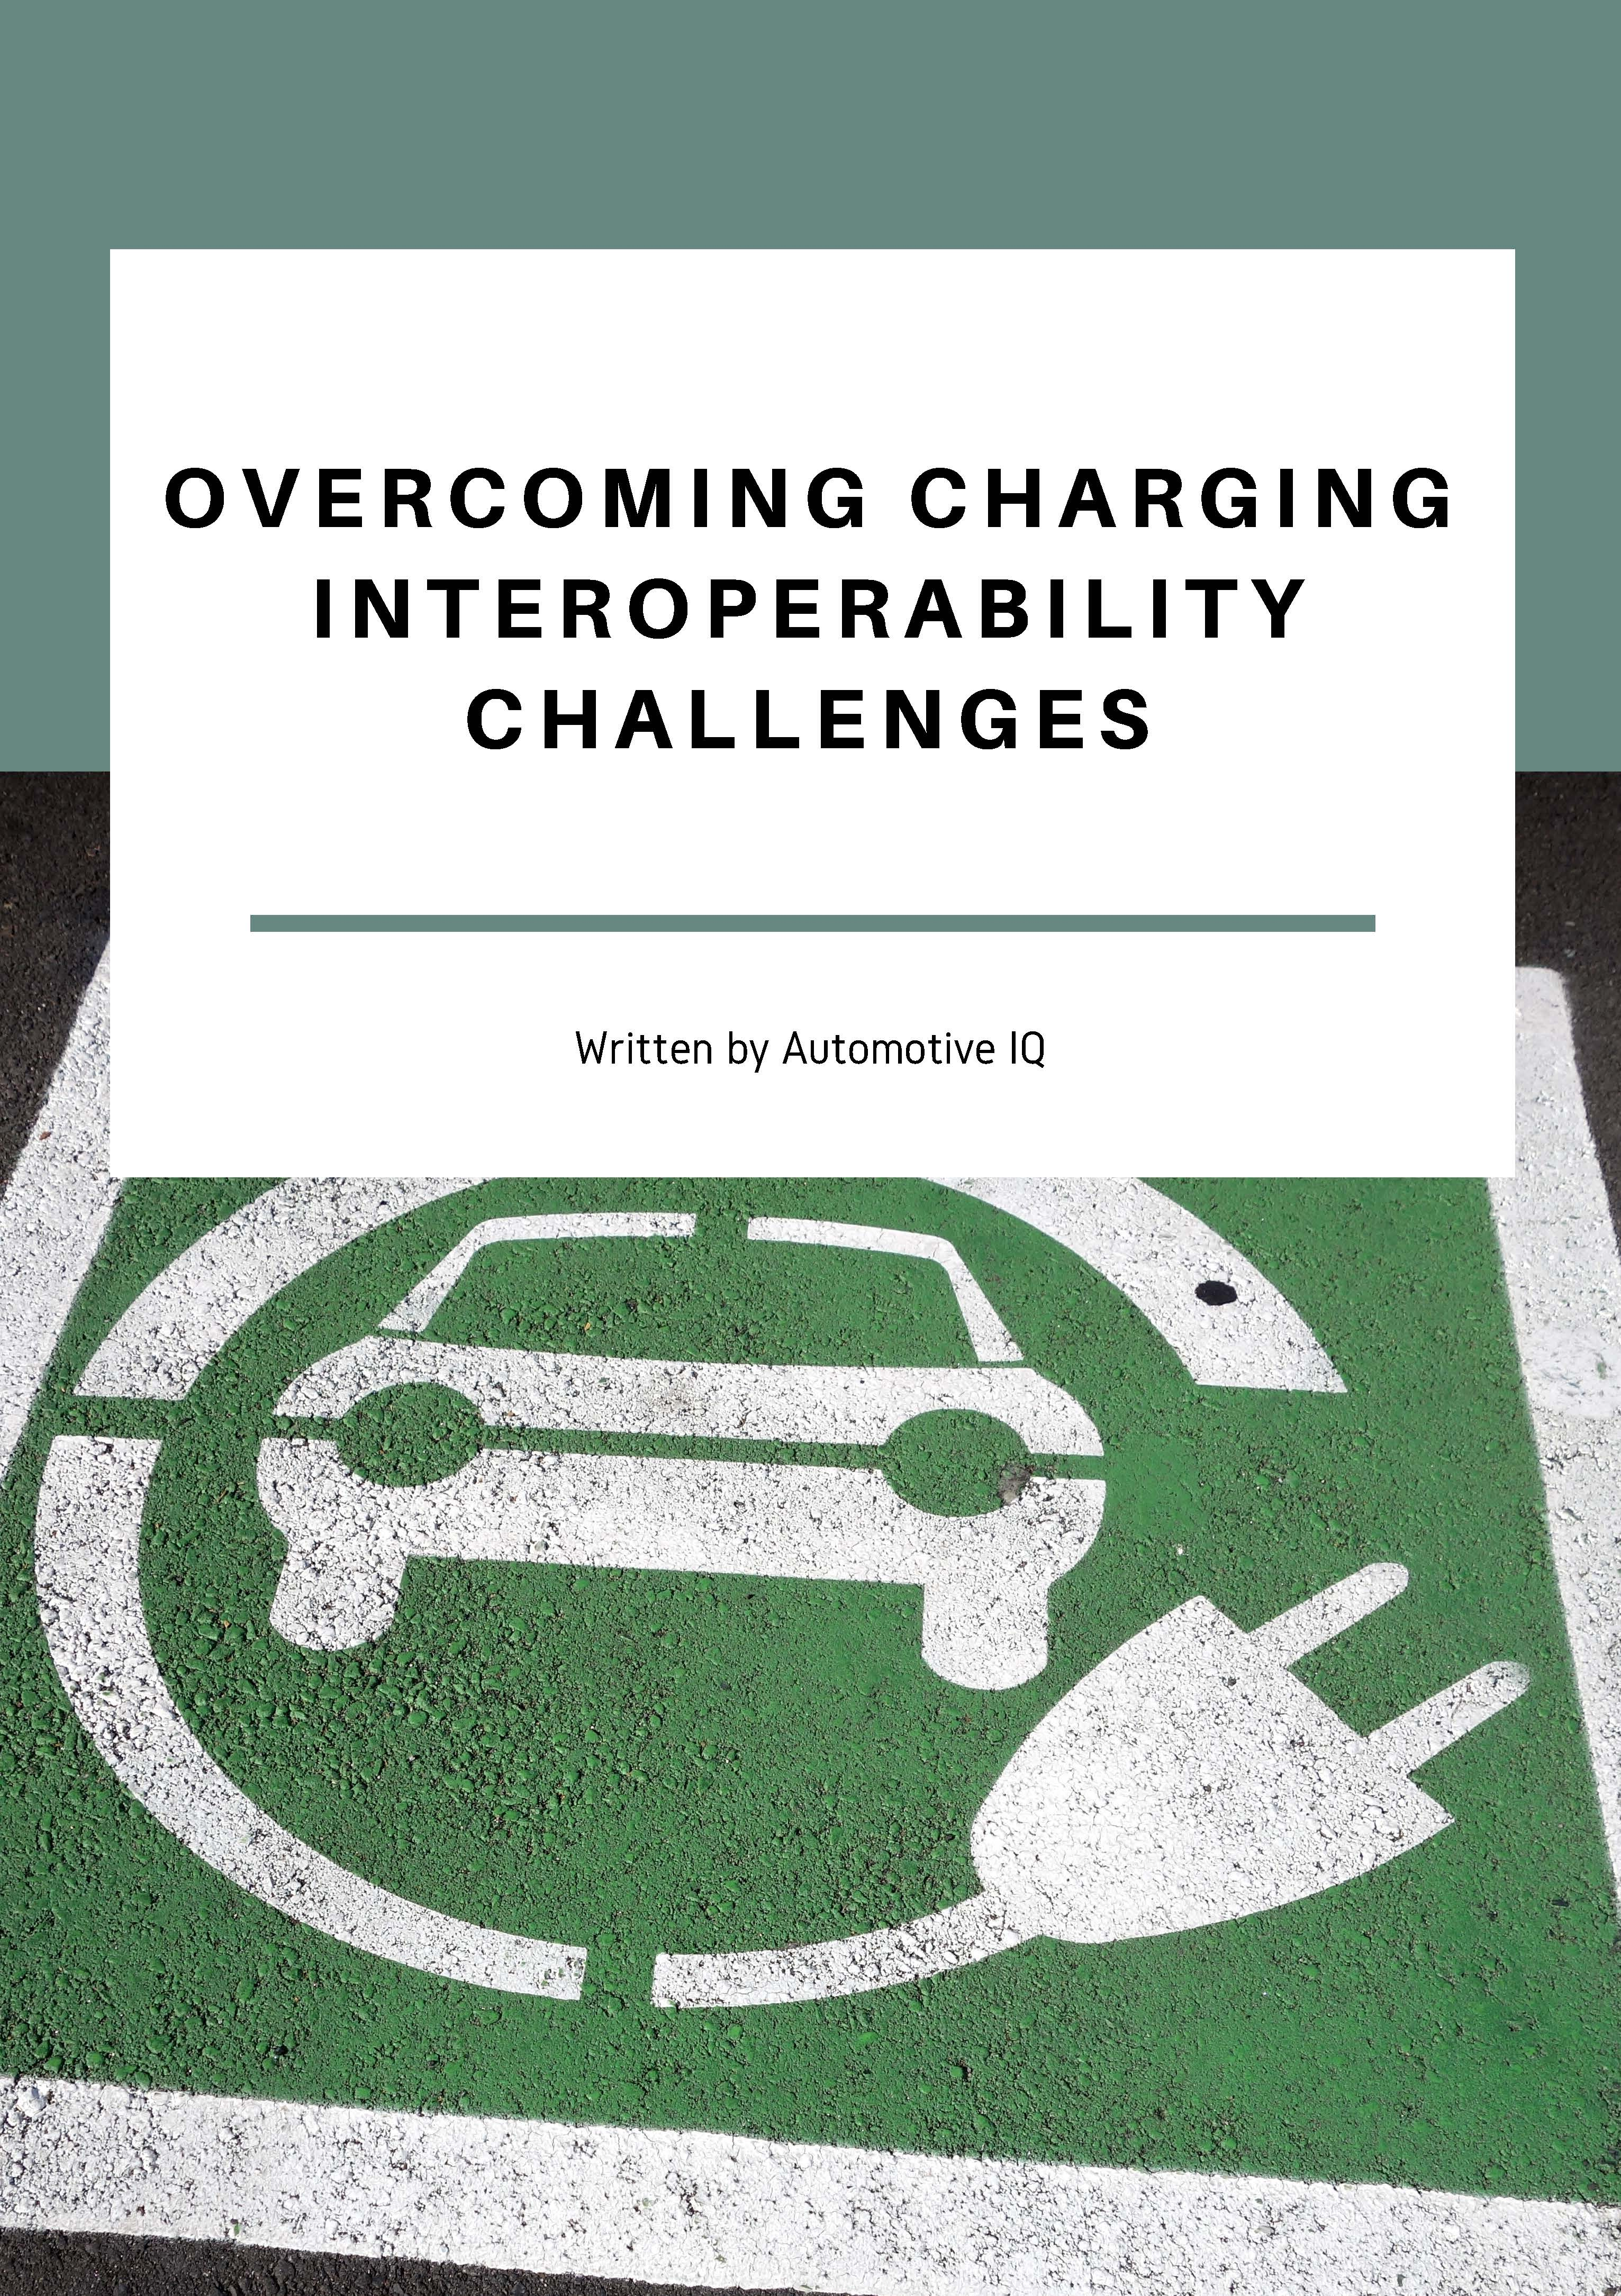 Report on Overcoming Charging Infrastructure Interoperability Challenges